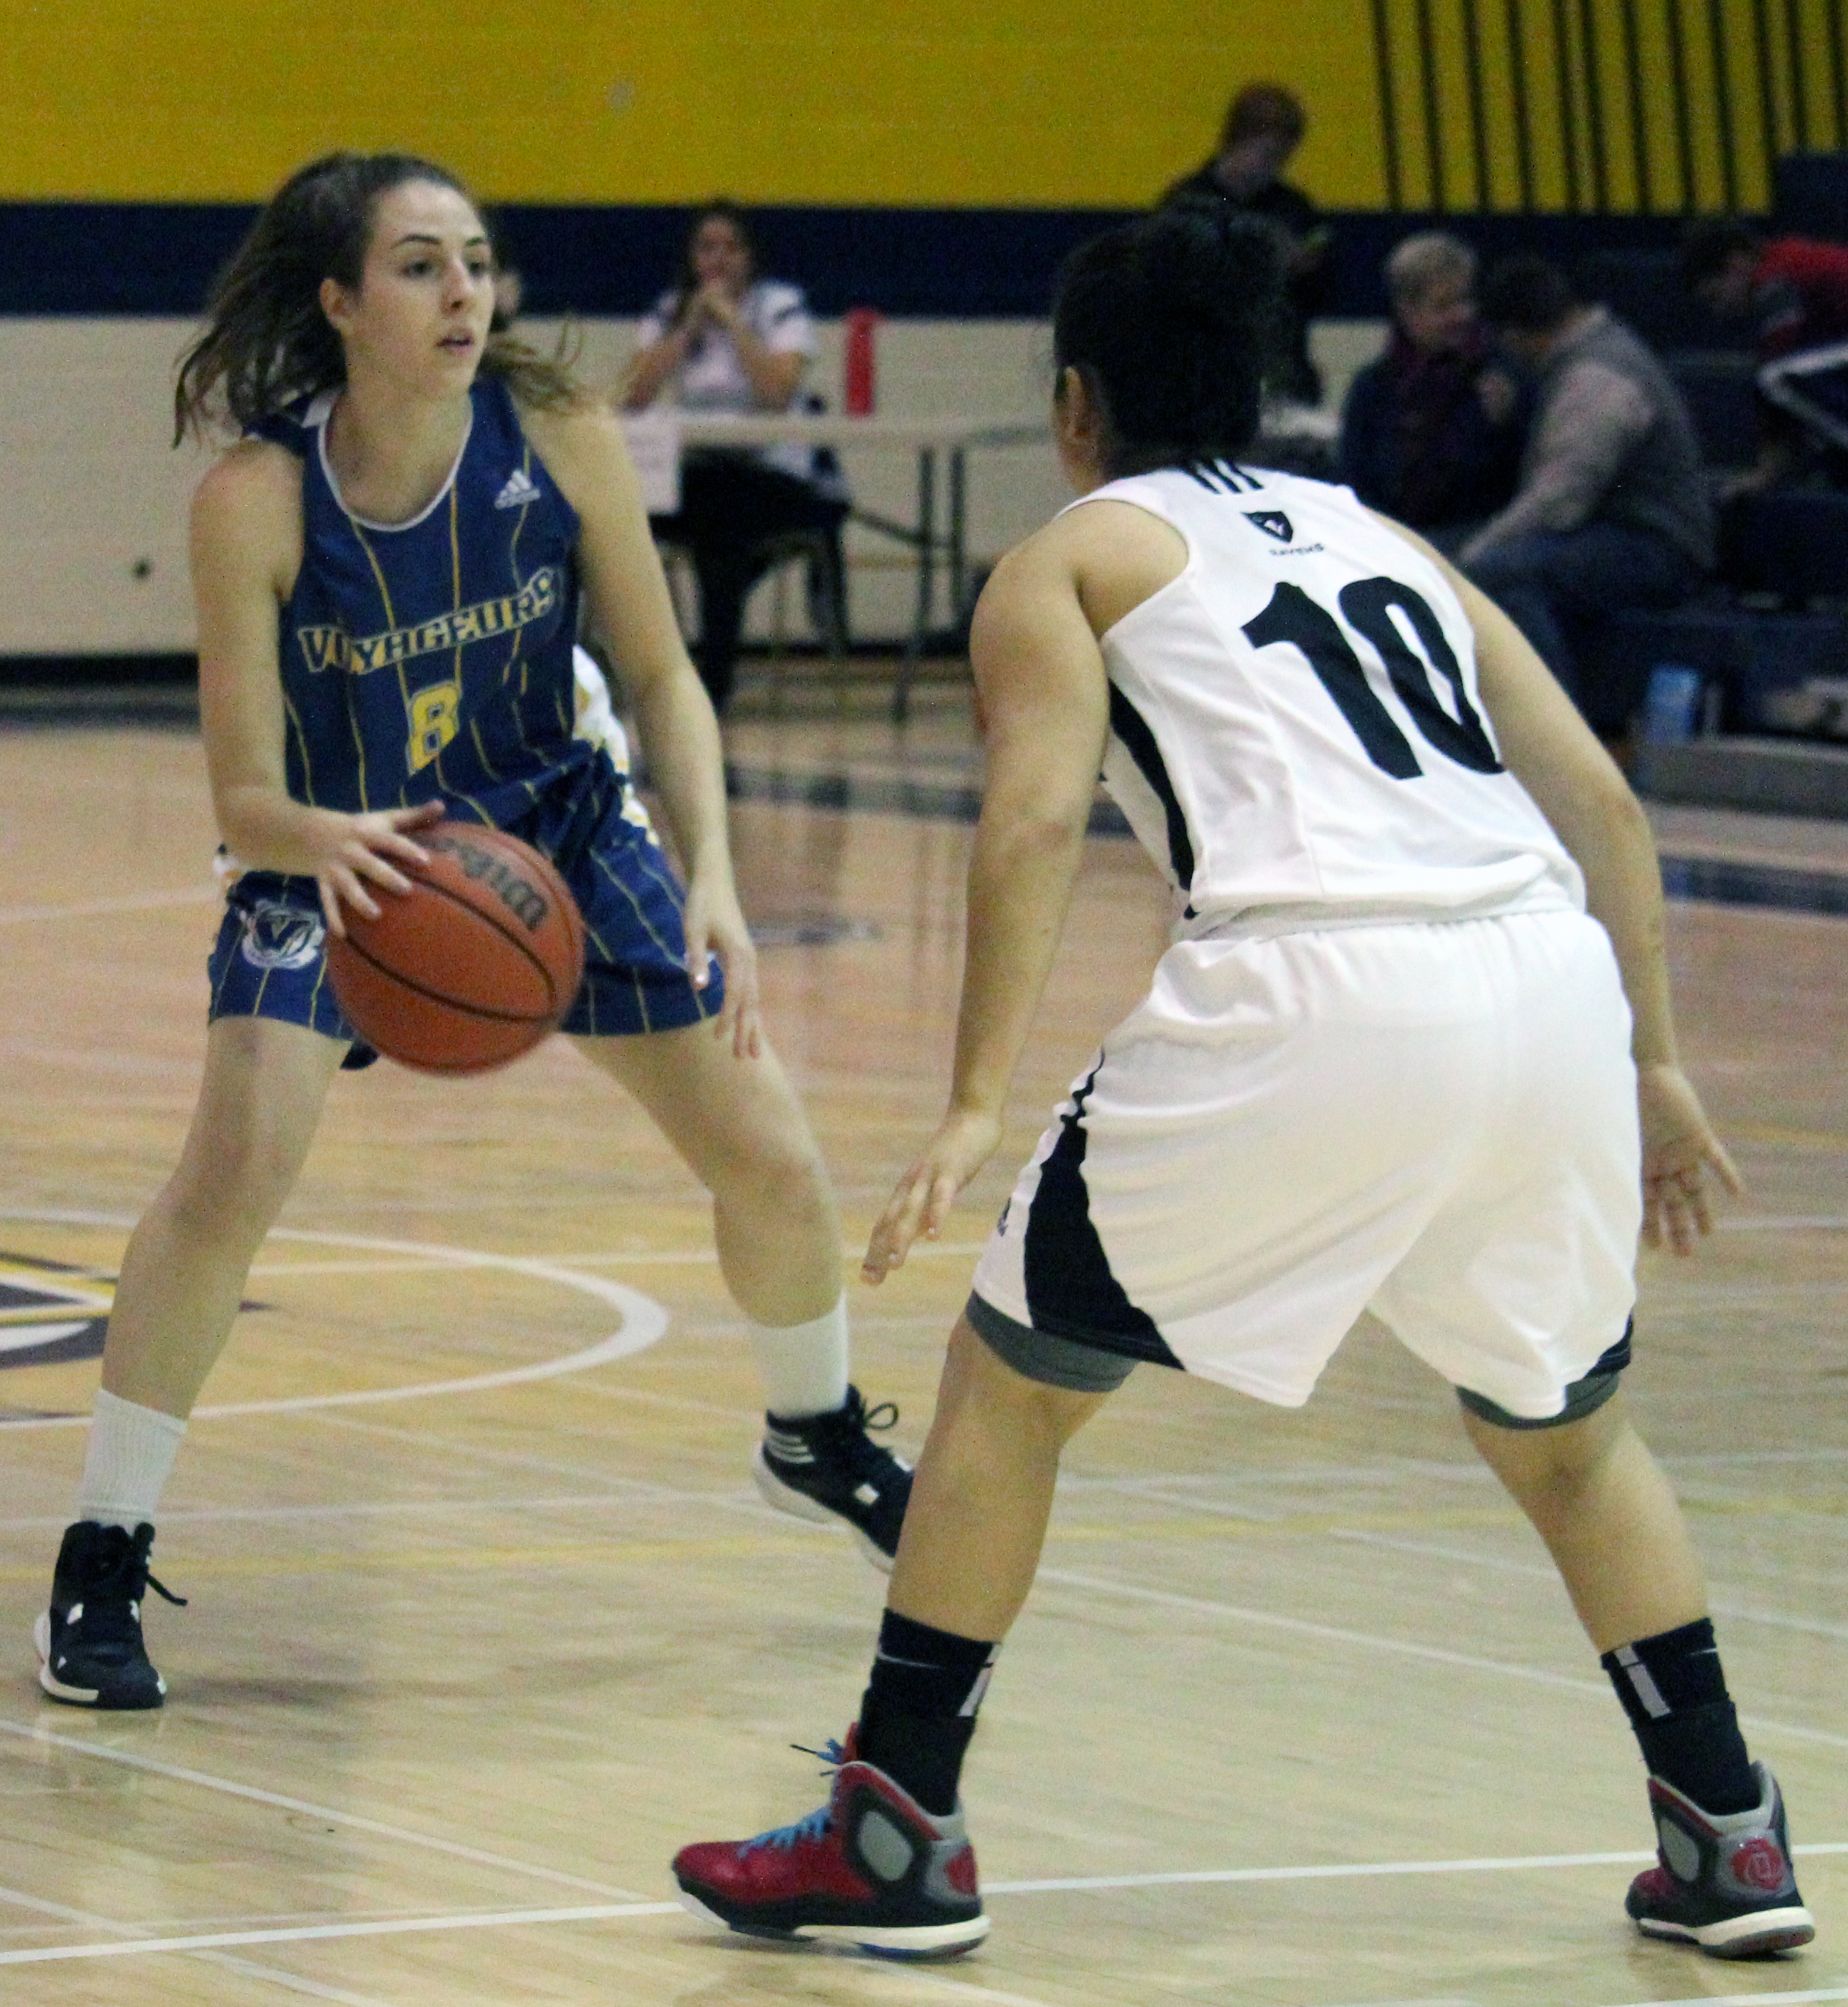 The Laurentian women's basketball team facing the Carleton Ravens on Nov. 15. Photo by Gabriel Rodrigues